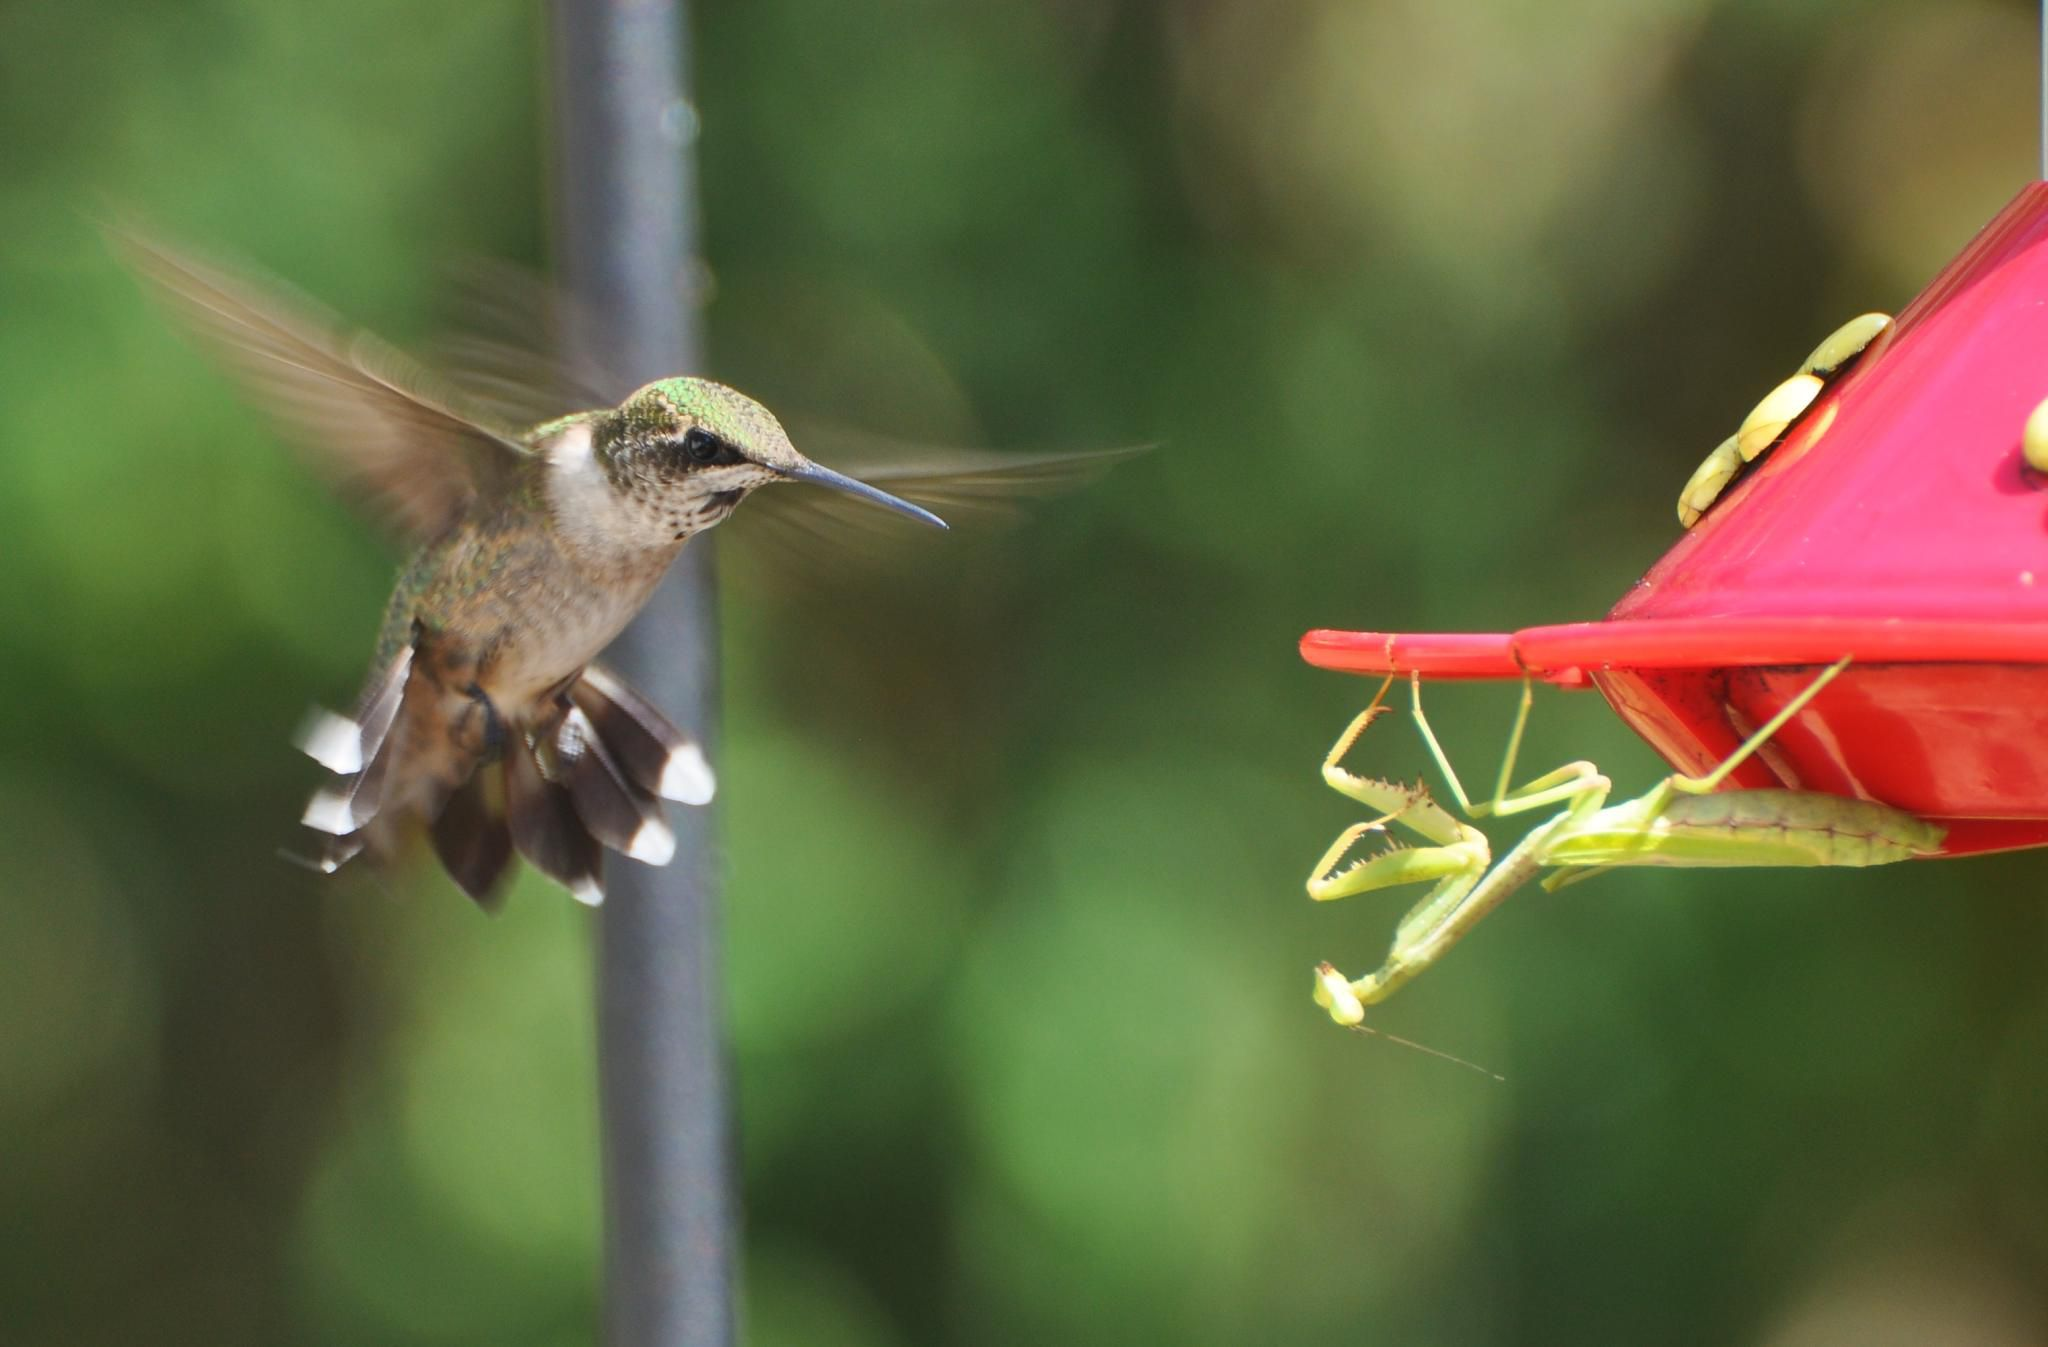 Hummingbird hovering next to a feeder where a praying mantis is waiting